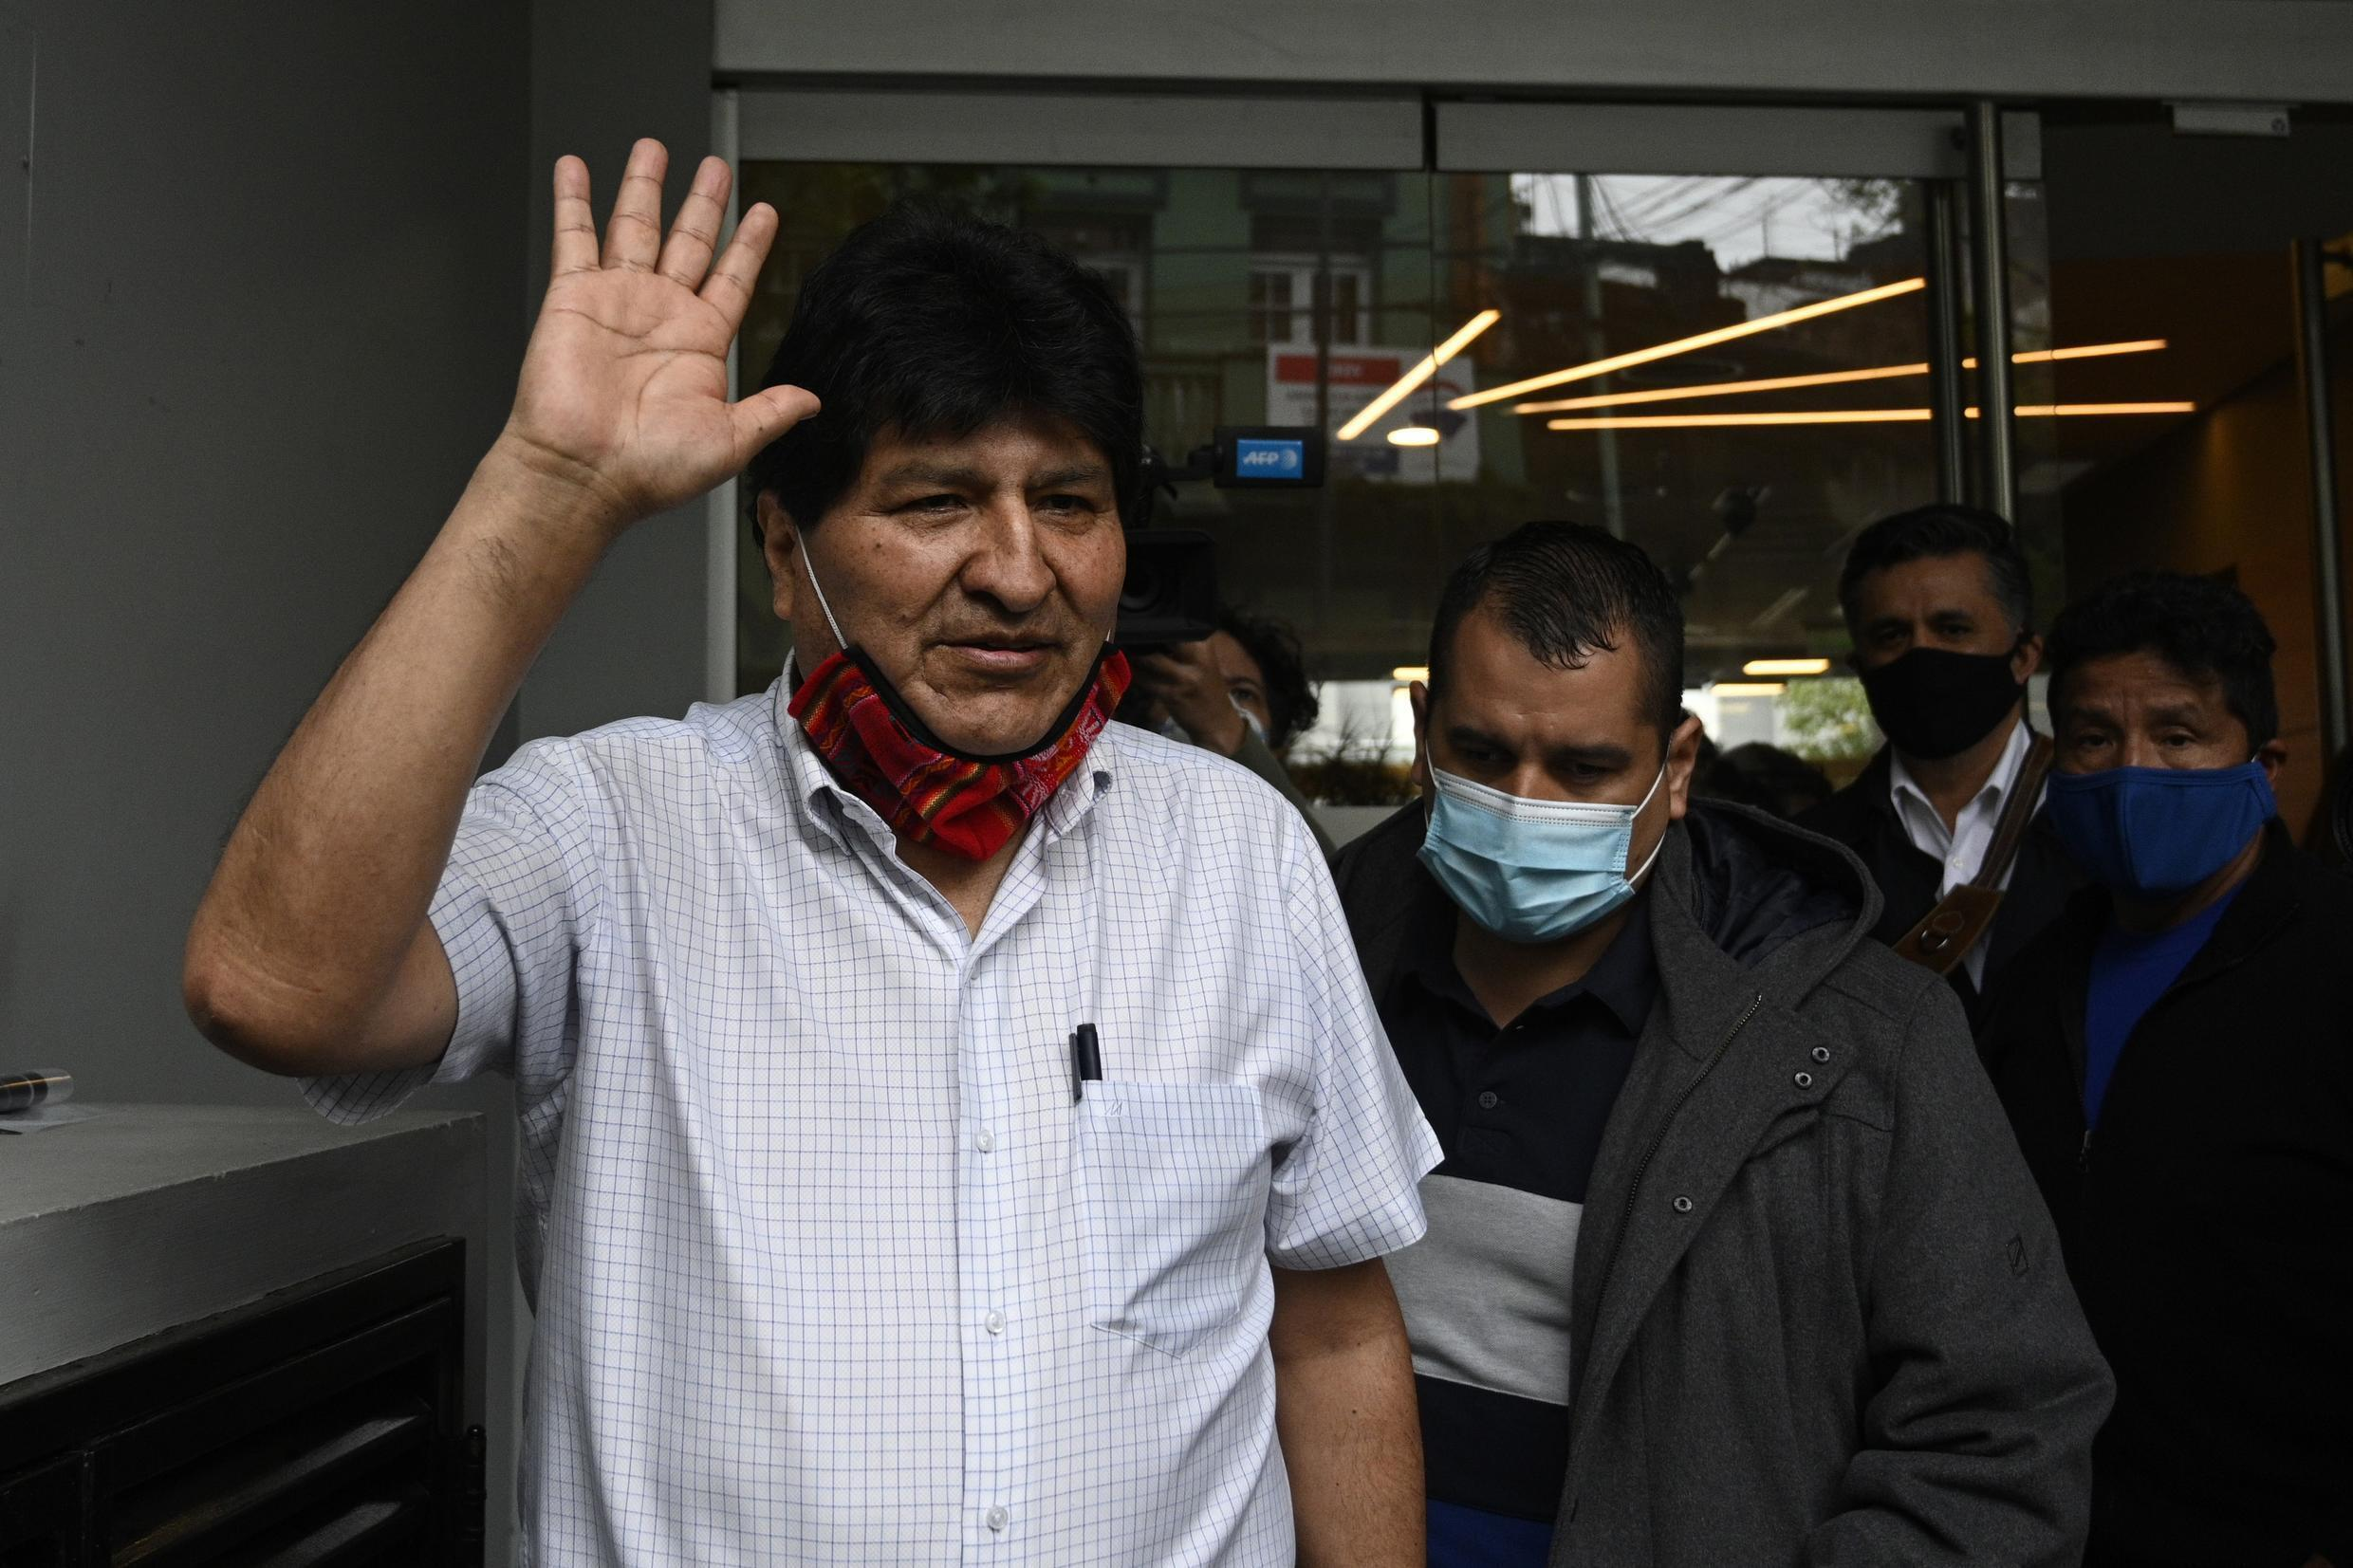 Former Bolivian president Evo Morales, pictured here on October 22, 2020, left Argentina for Venezuela on Friday, a report said